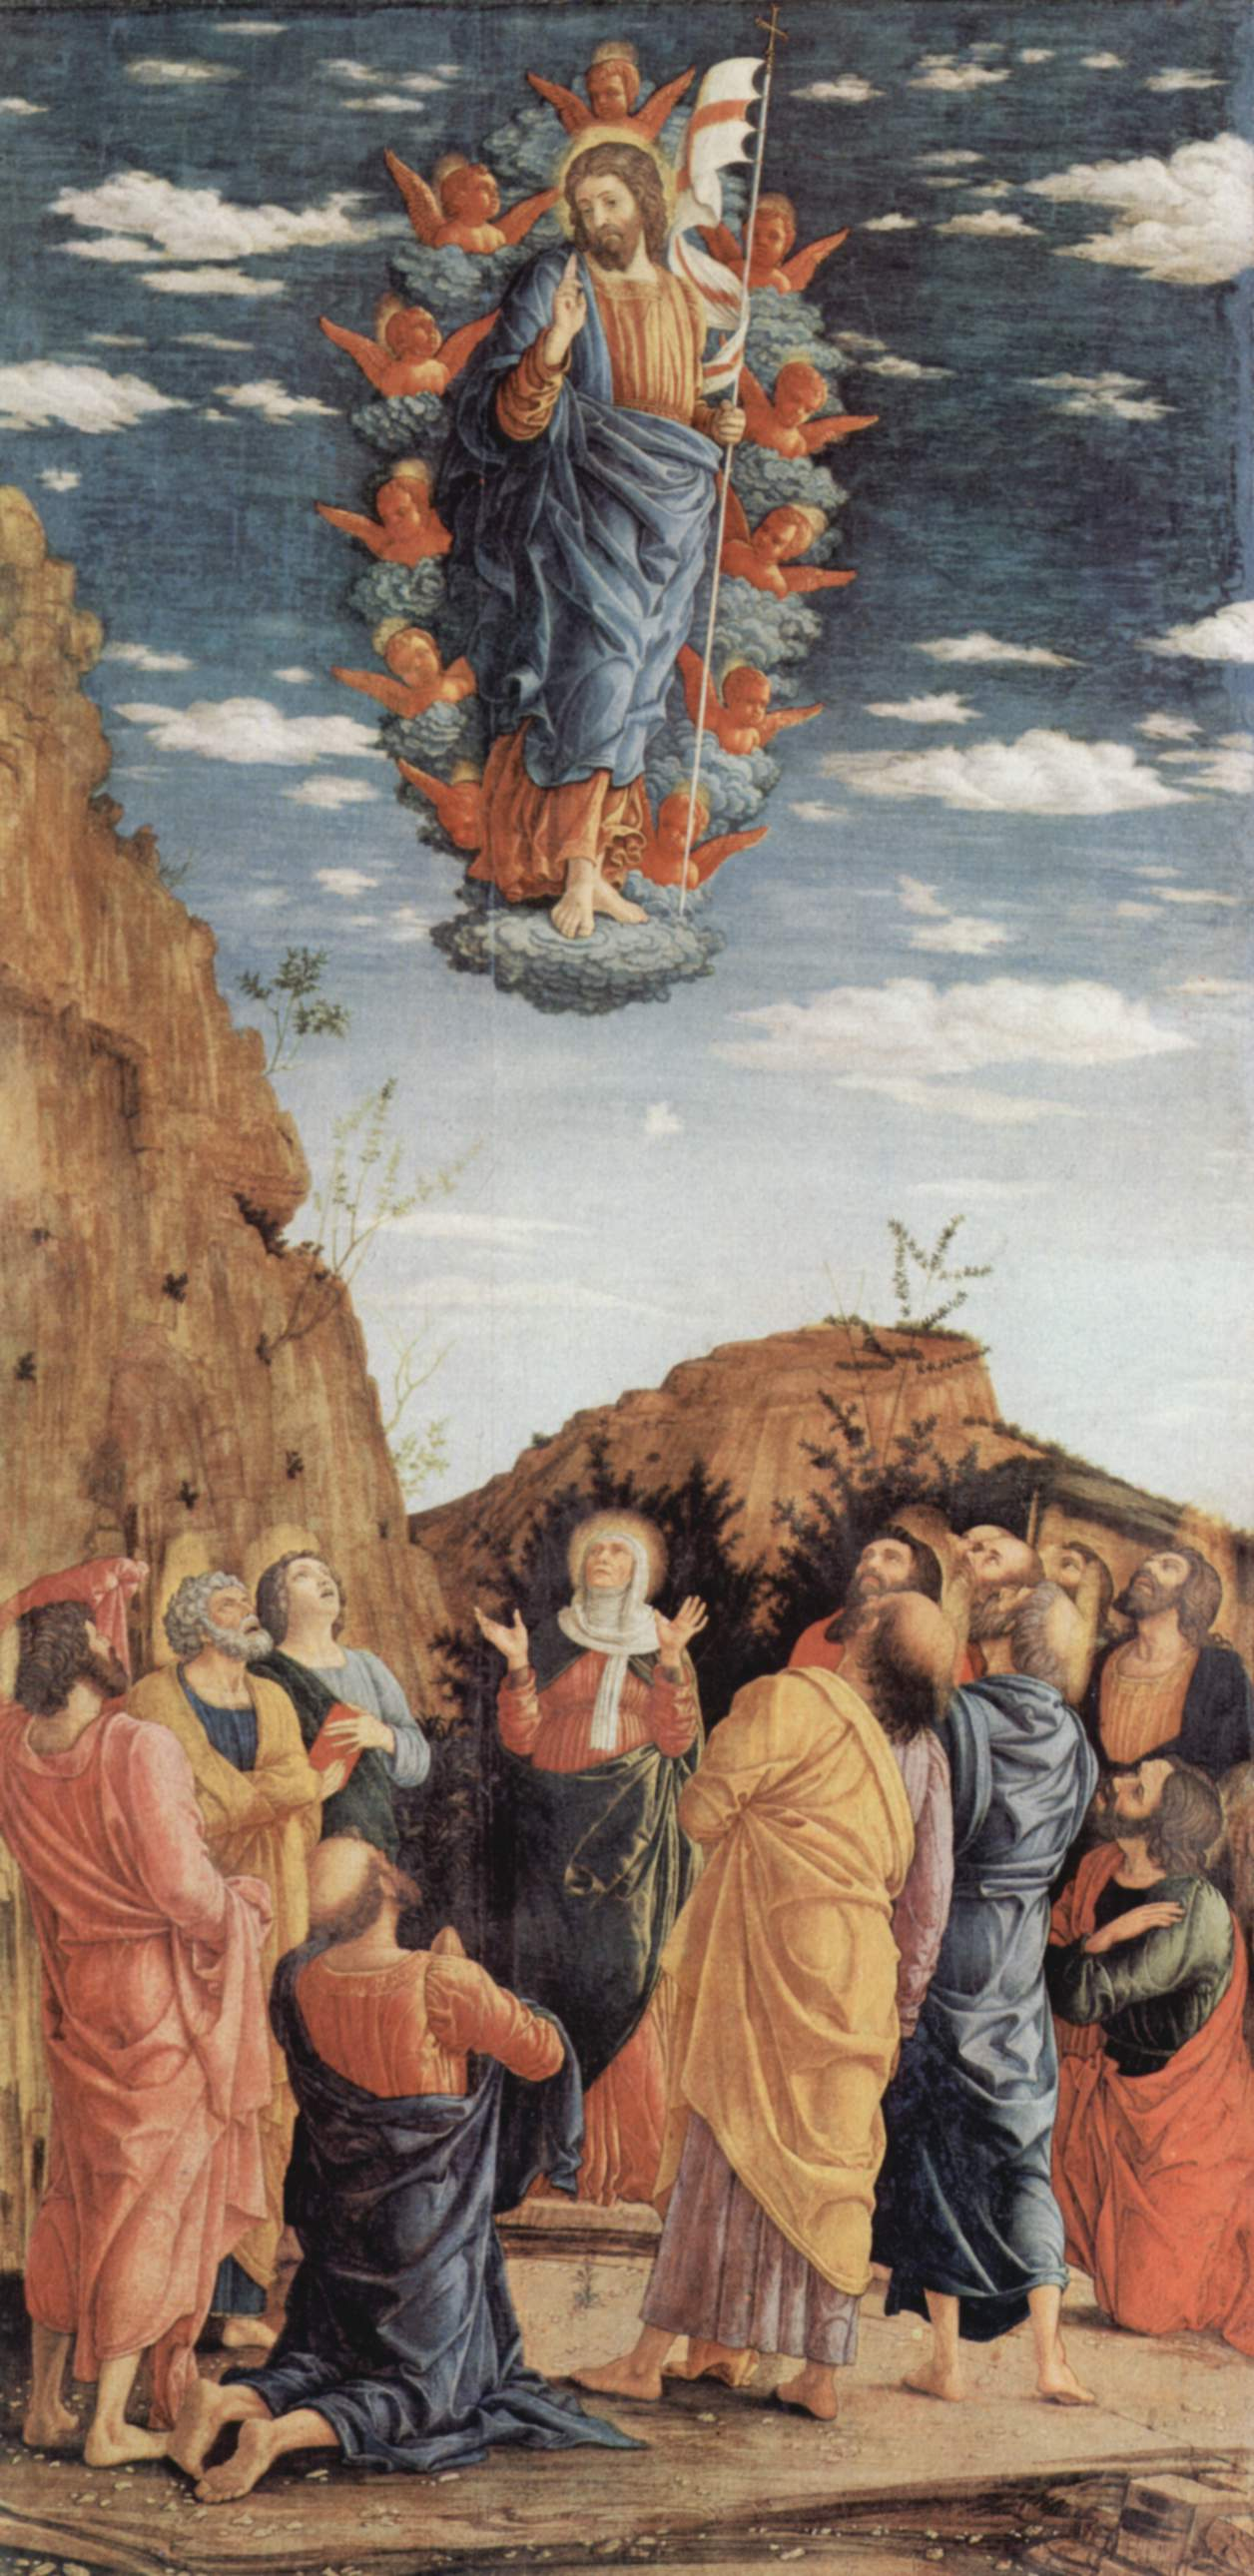 https://i0.wp.com/upload.wikimedia.org/wikipedia/commons/6/66/Andrea_Mantegna_012.jpg